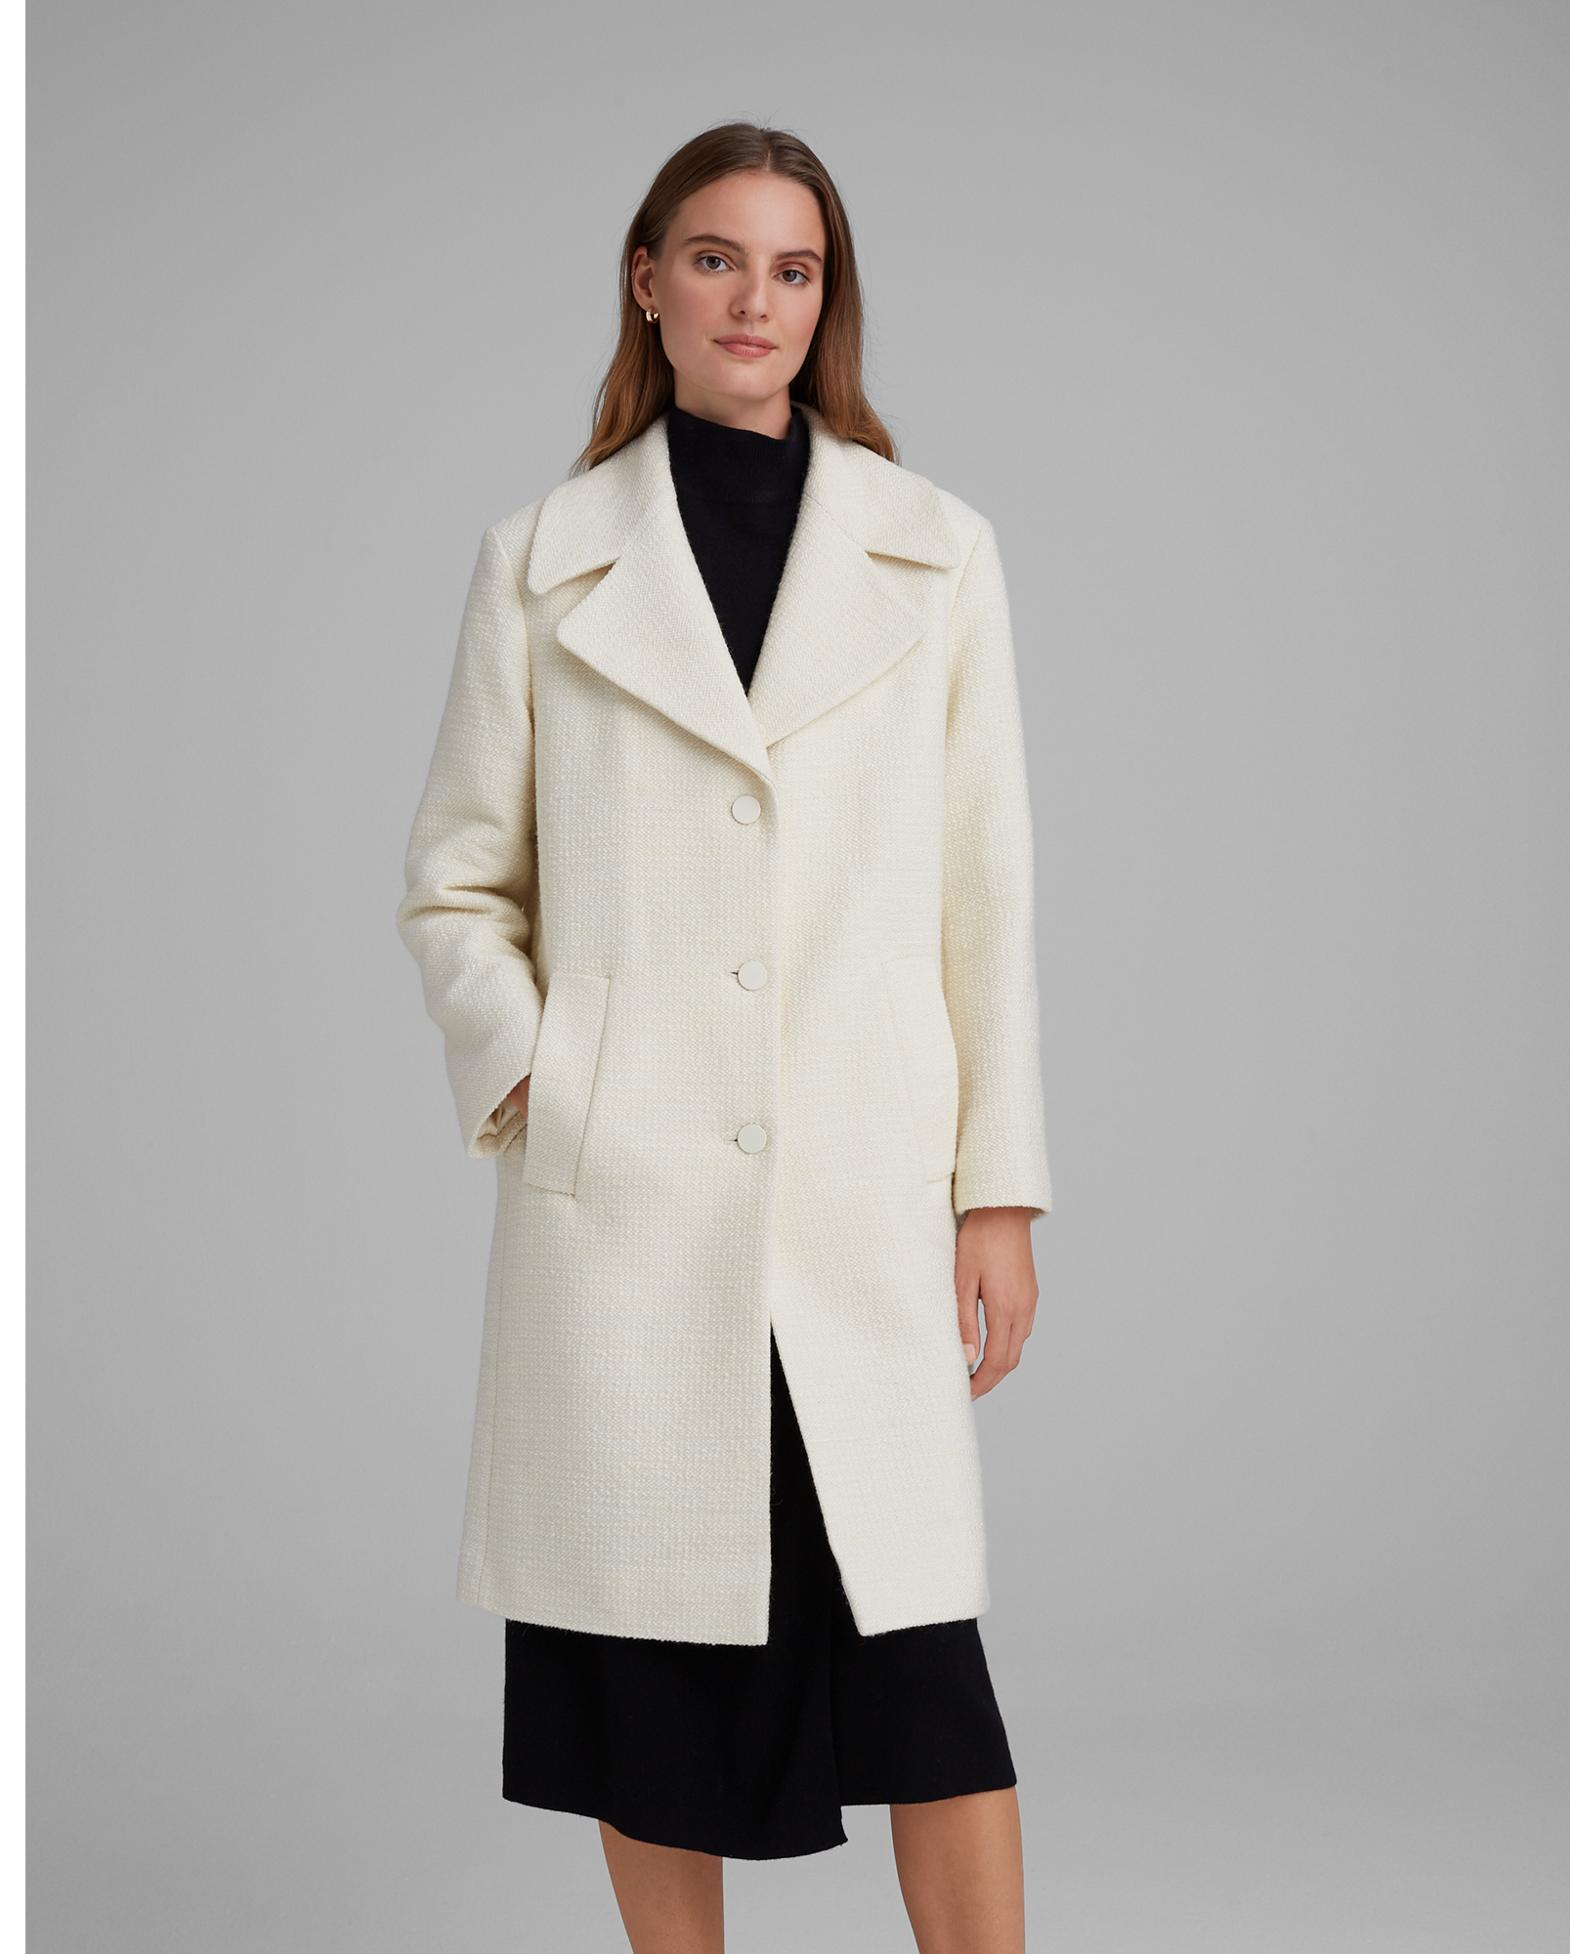 Club Monaco: Extra 30% off sale styles + extra 10% off Outwear!